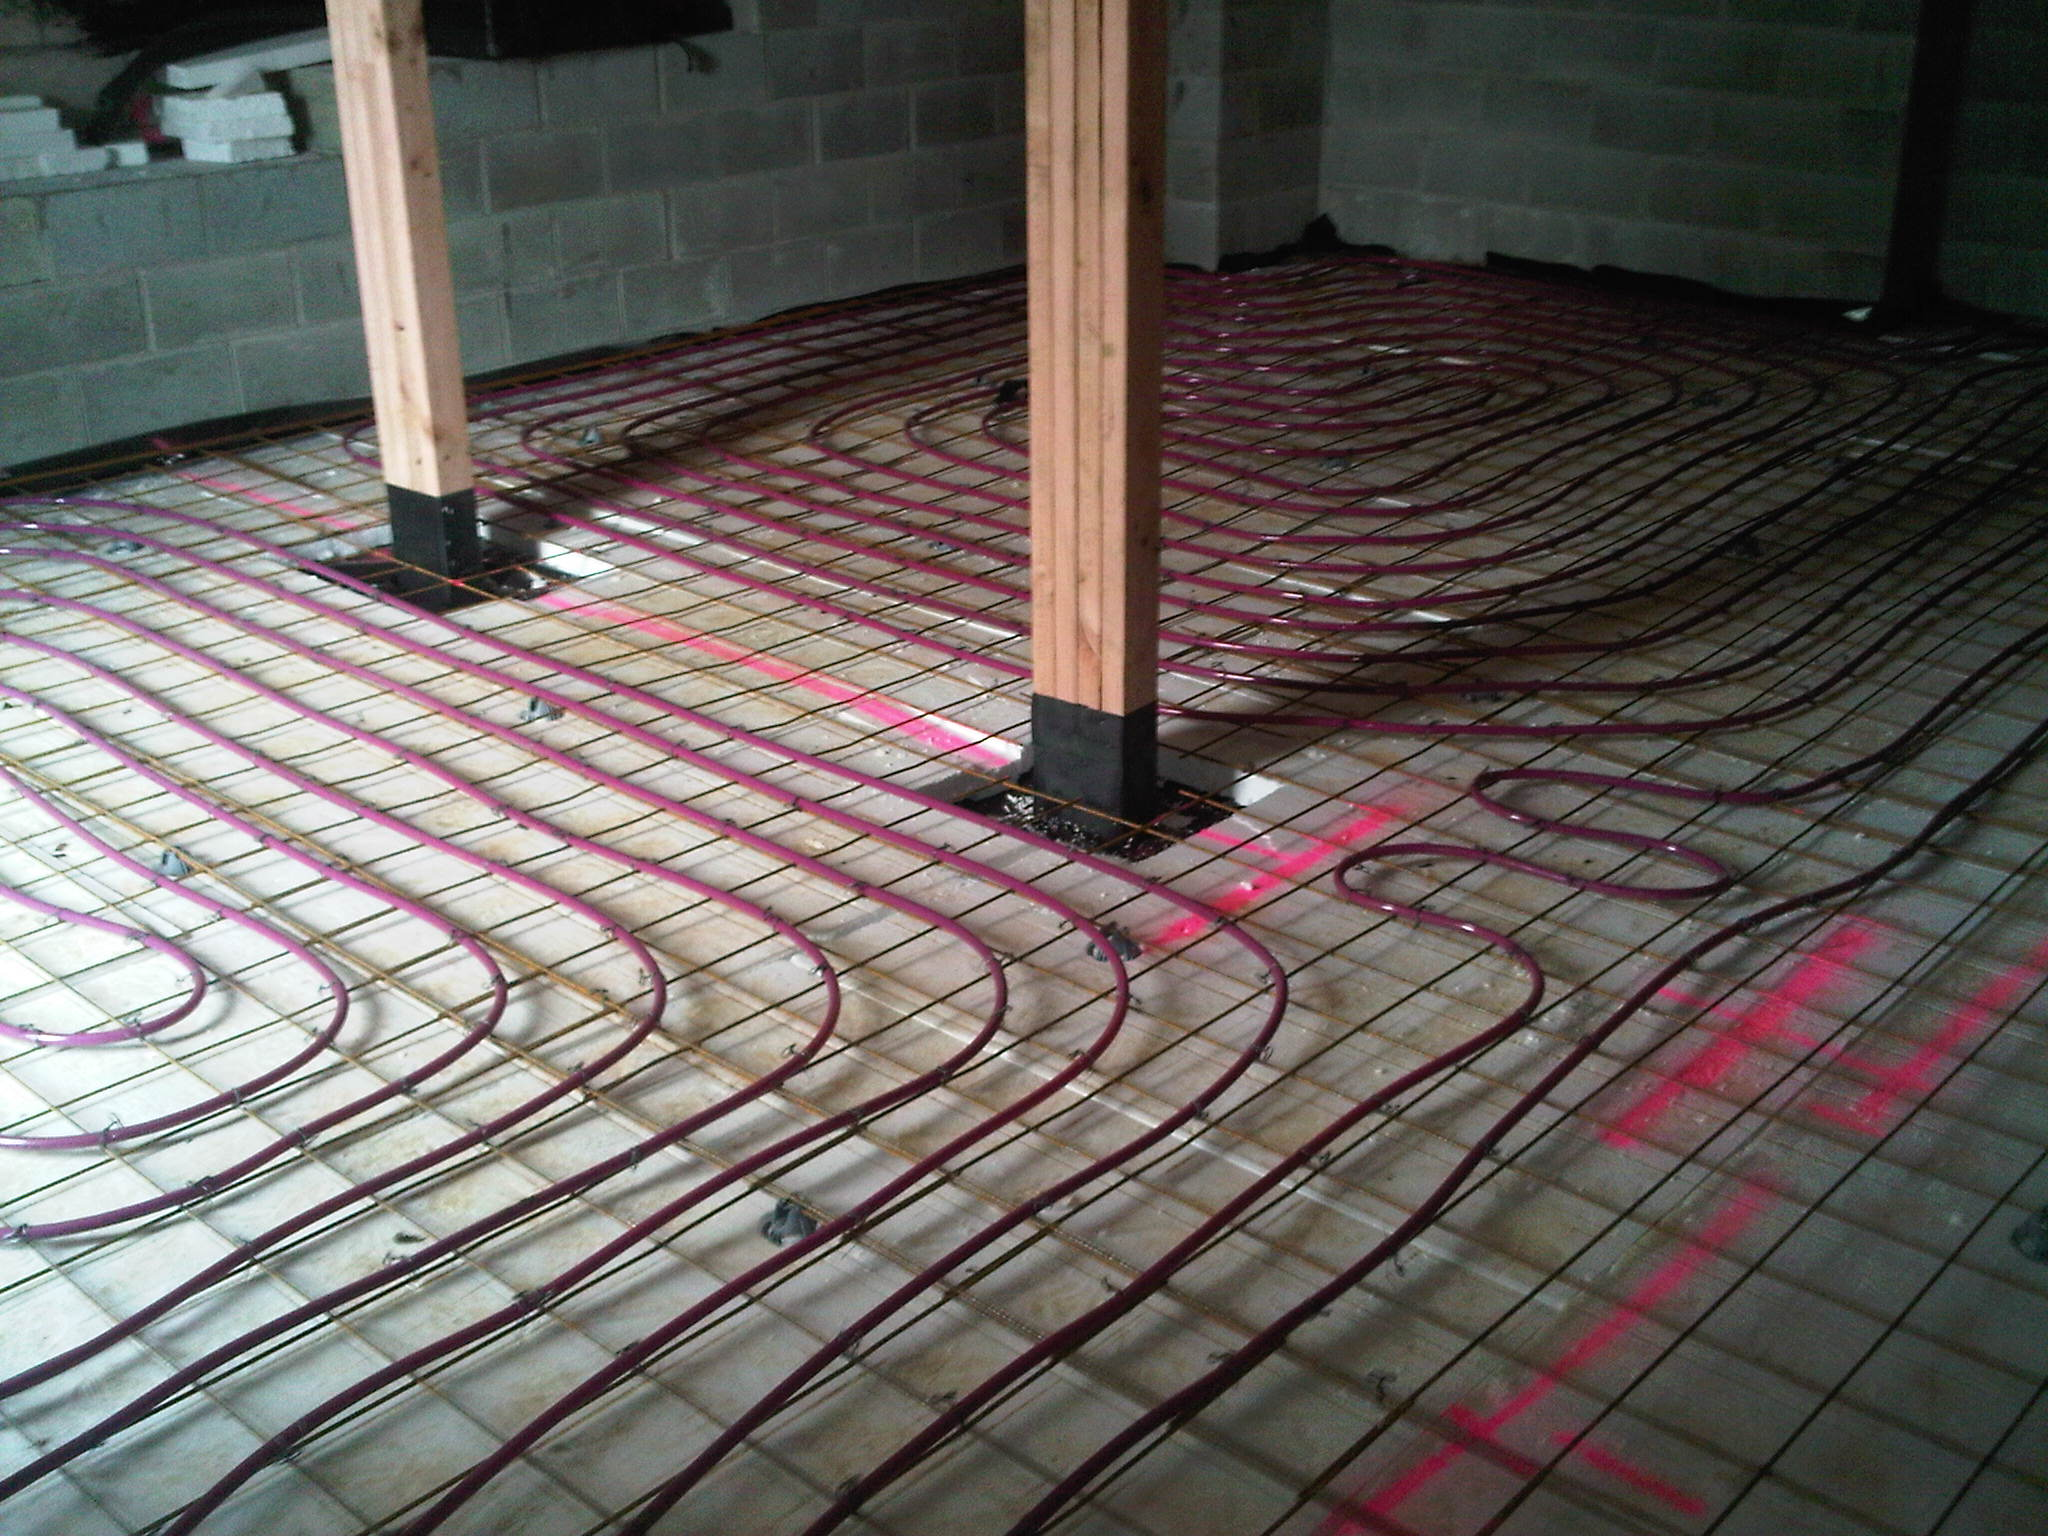 Underfloor Heating System Installations Euro Plumbing House Wiring Under Floor In Central